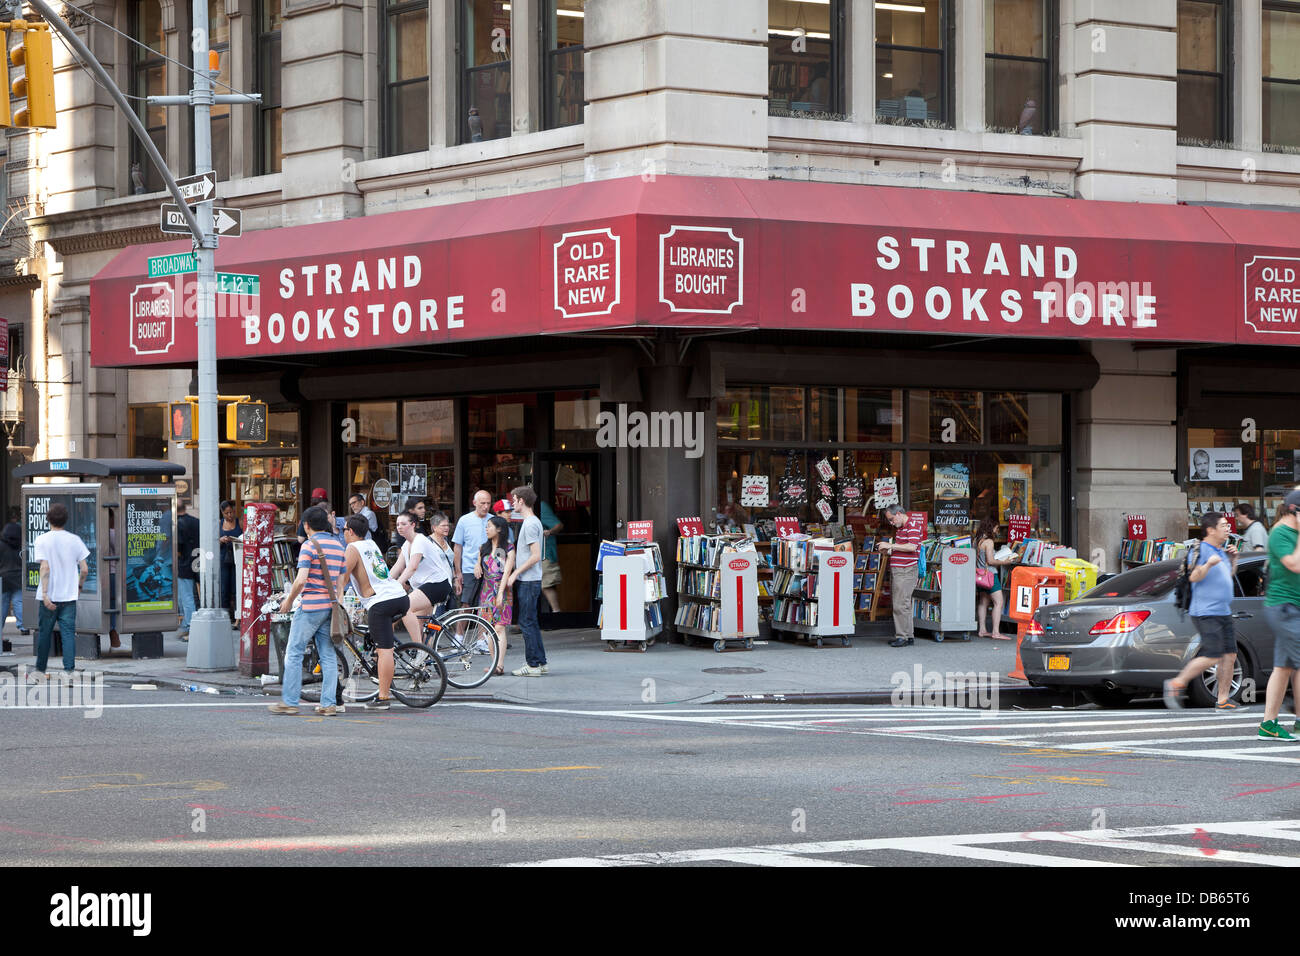 Strand Bookstore am Broadway in New York City Stockbild